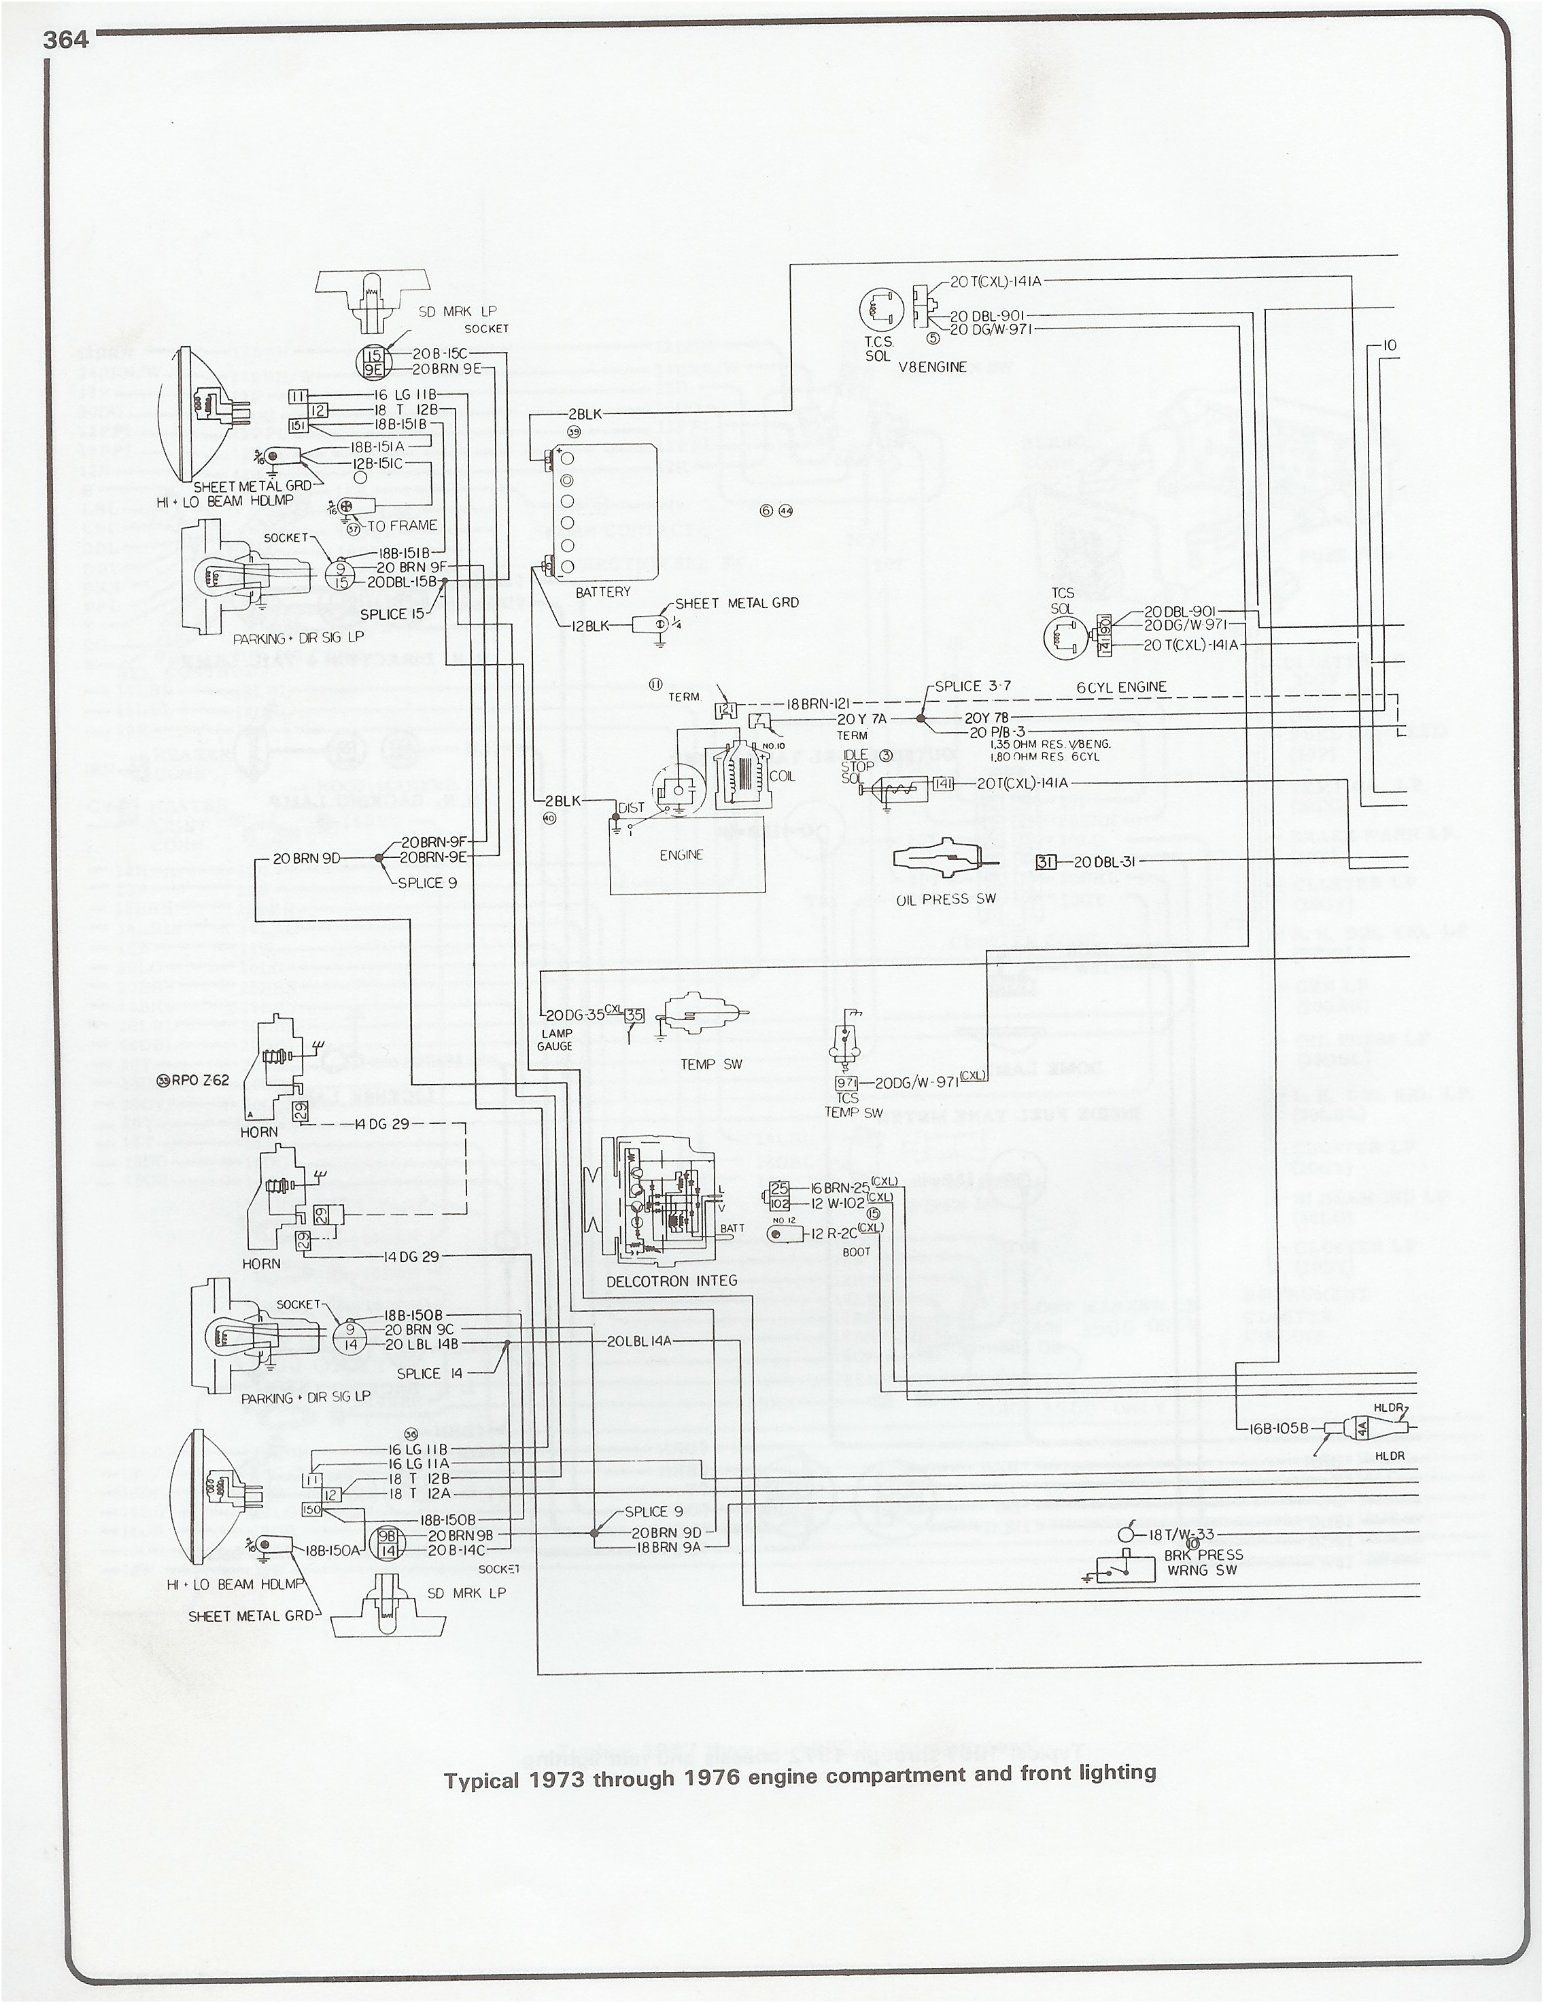 medium resolution of wiring diagram 1973 1976 chevy pickup chevy wiring diagram 76 gmc tail light wiring